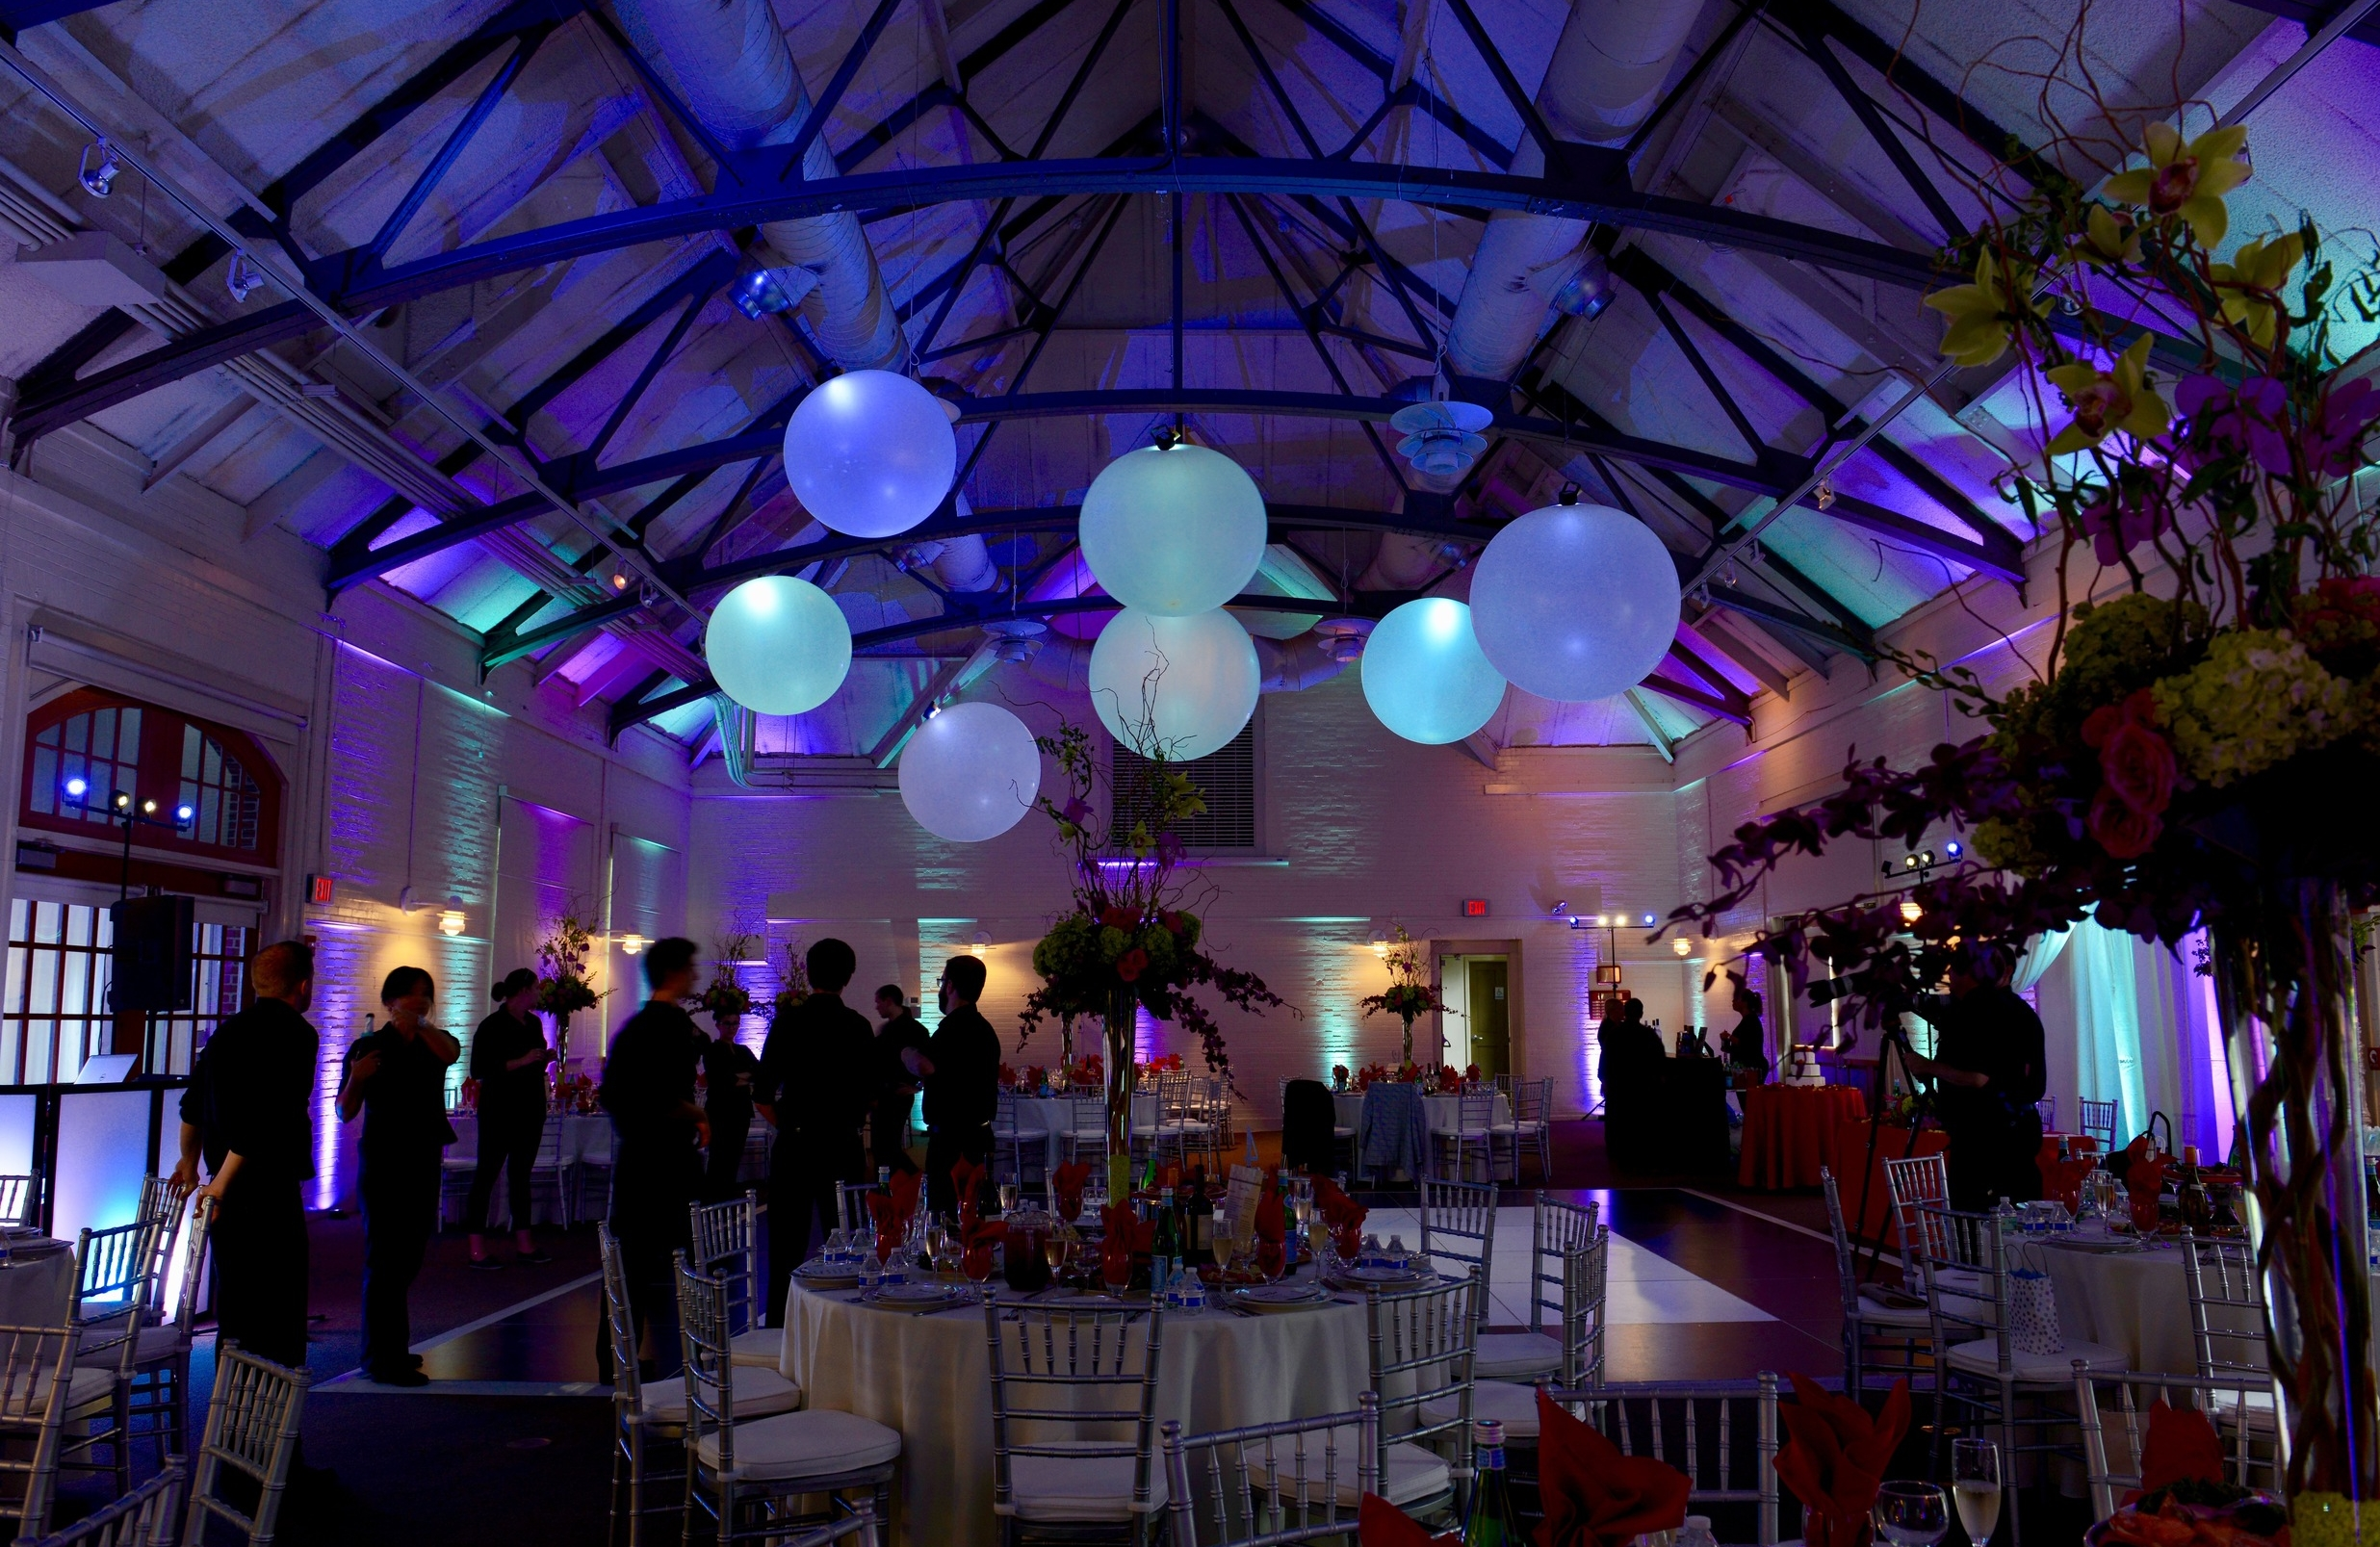 The guests entered a room of teal and purple.   Warm light around the room was kept at the level of the tables to illuminate them separately but not brightly so as not to lose the effect of the colored light.